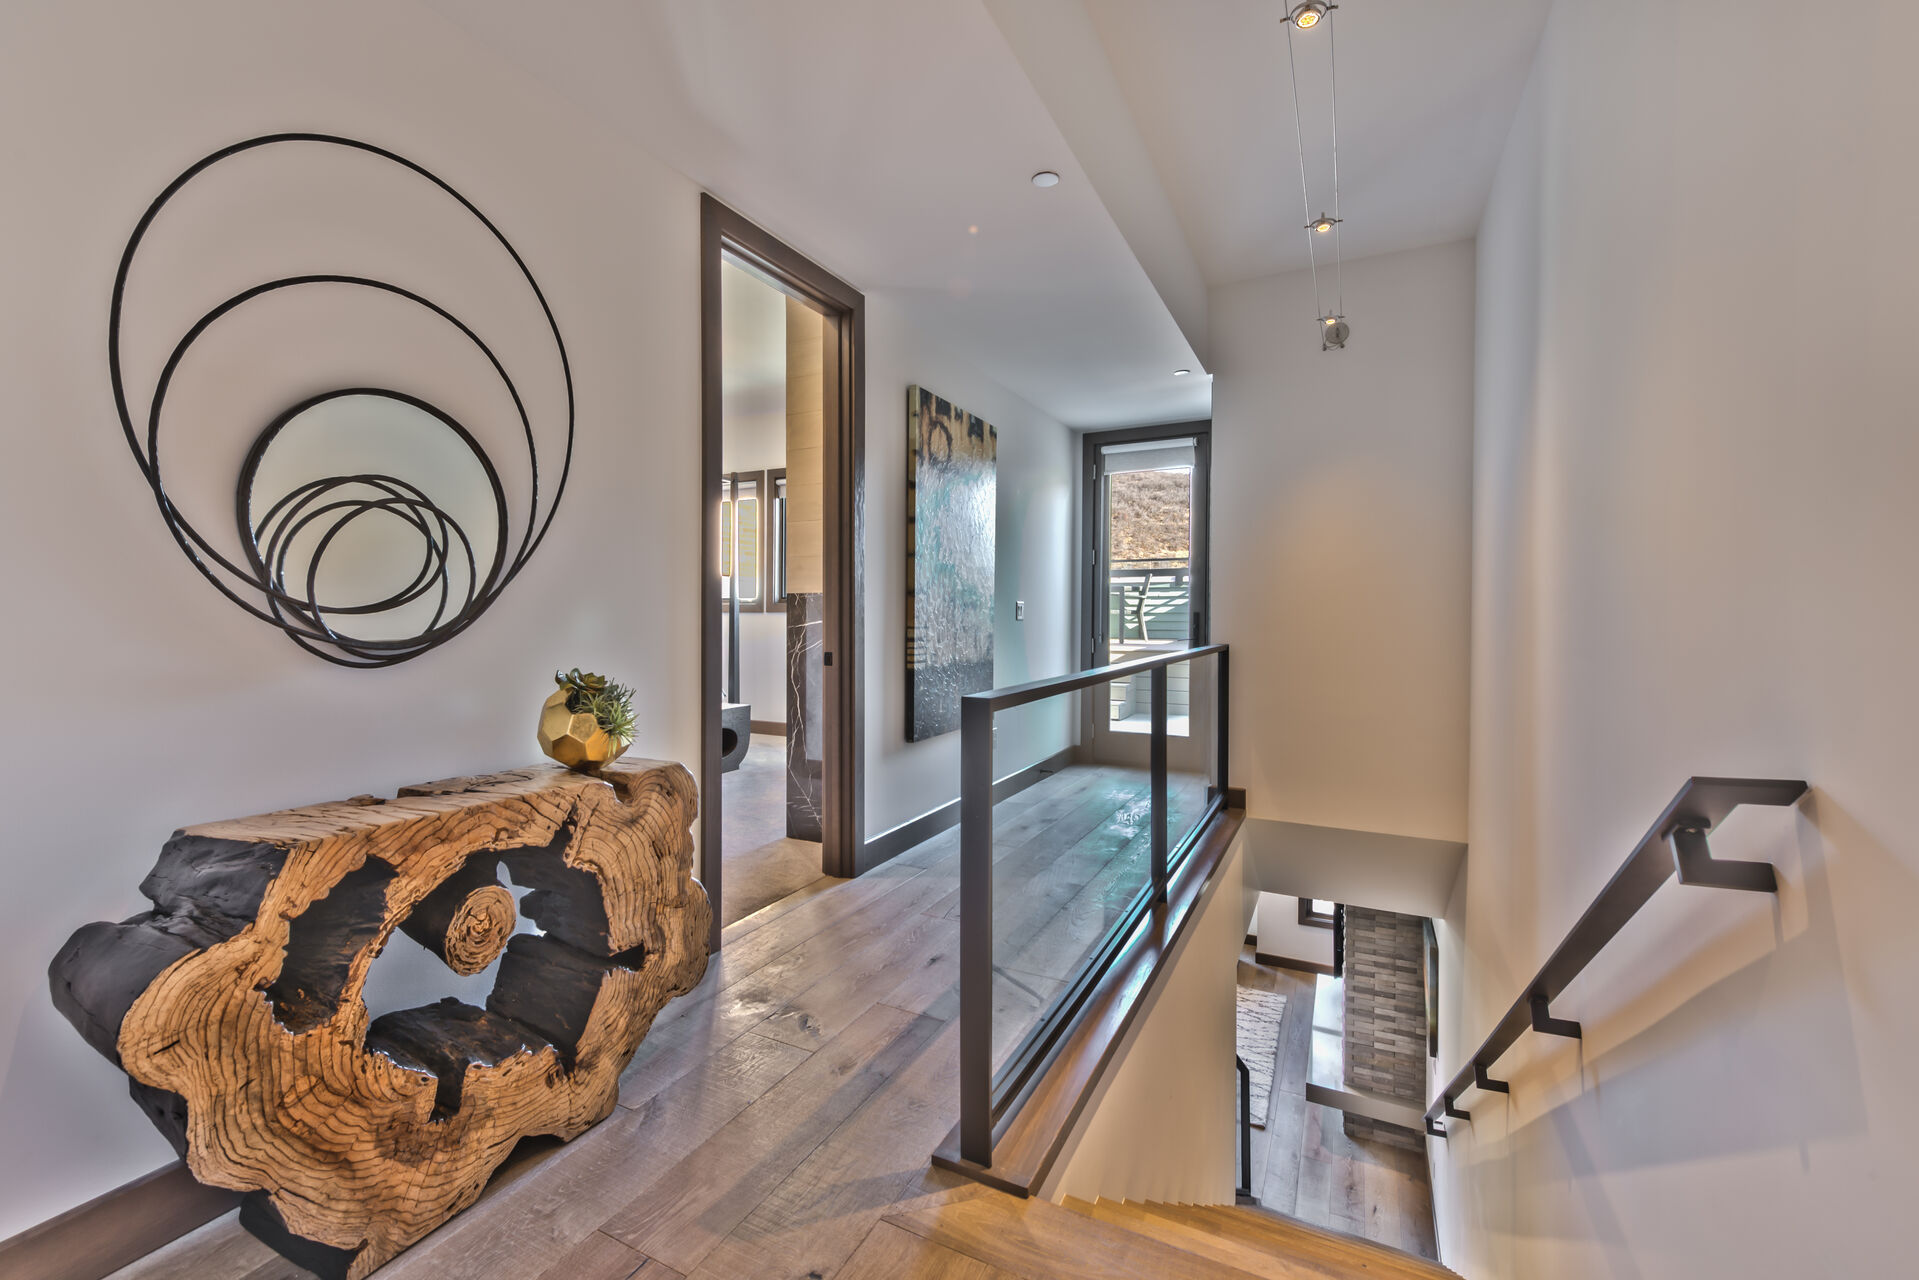 Main Level Stairs to Upper Level Bedrooms and Large Private Deck with Hot Tub Overlooking Main Street